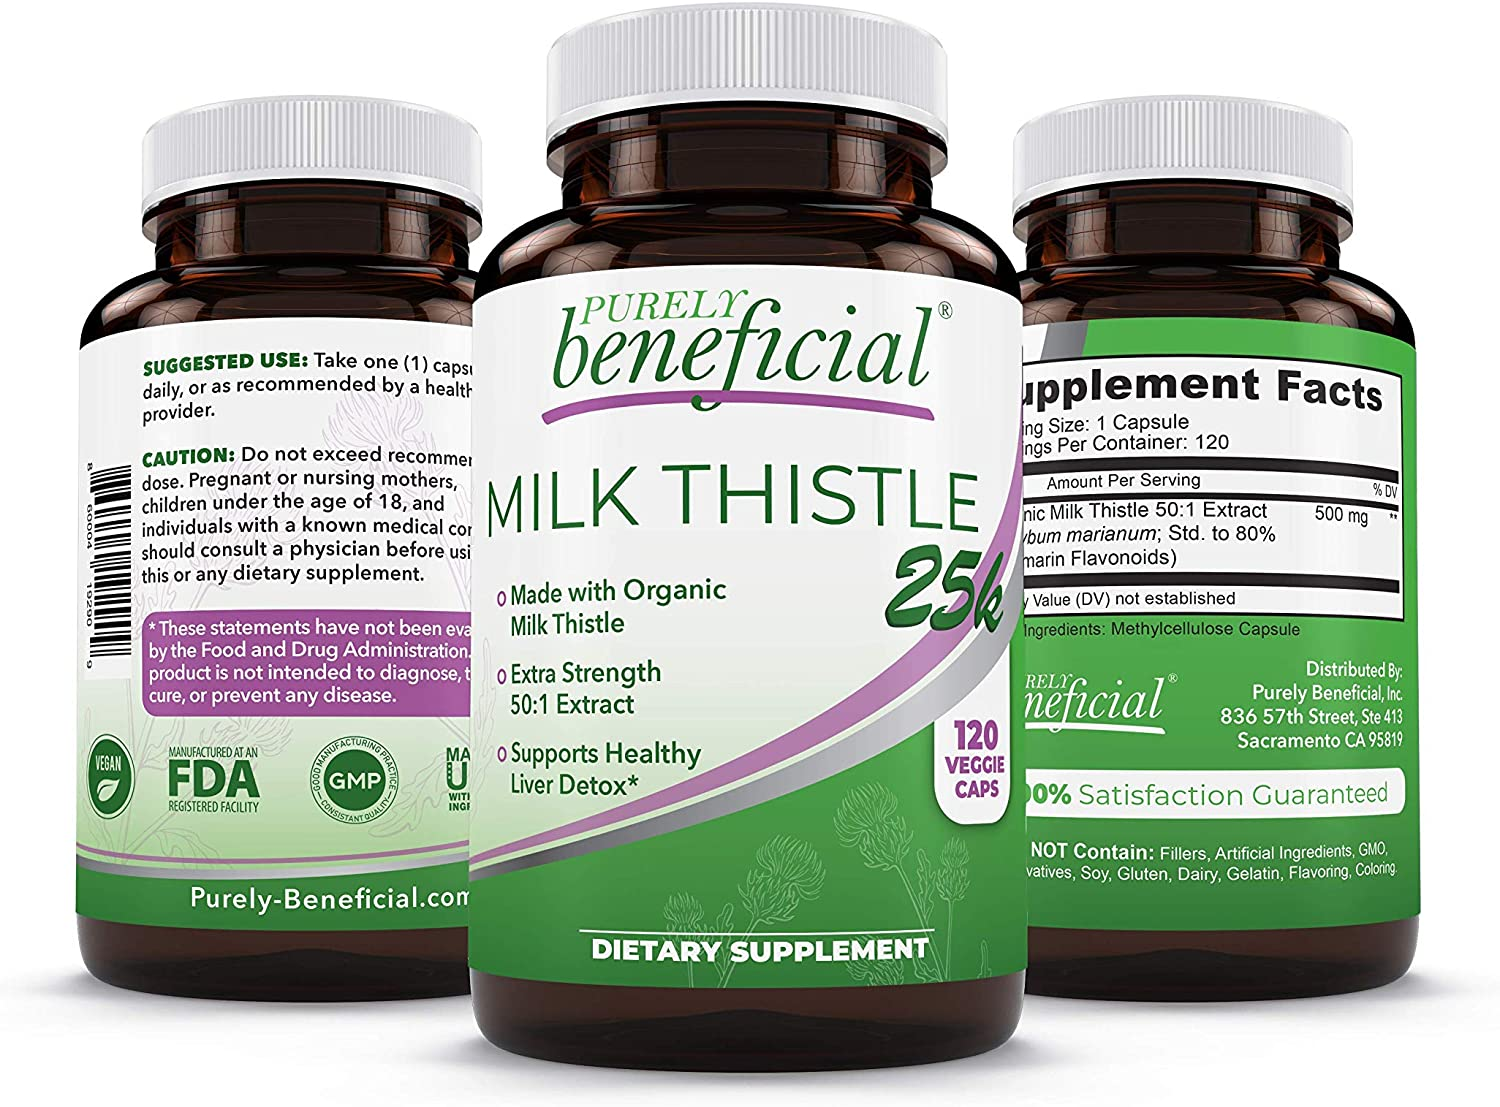 Milk Thistle Capsules- 25,000 MG Strength- 50X Concentrated Seed Extract & 80% Silymarin Standardized- 120 Vegan Pills- Supports Healthy Liver Cleanse & Detoxification, Non-GMO- 4 Month Supply